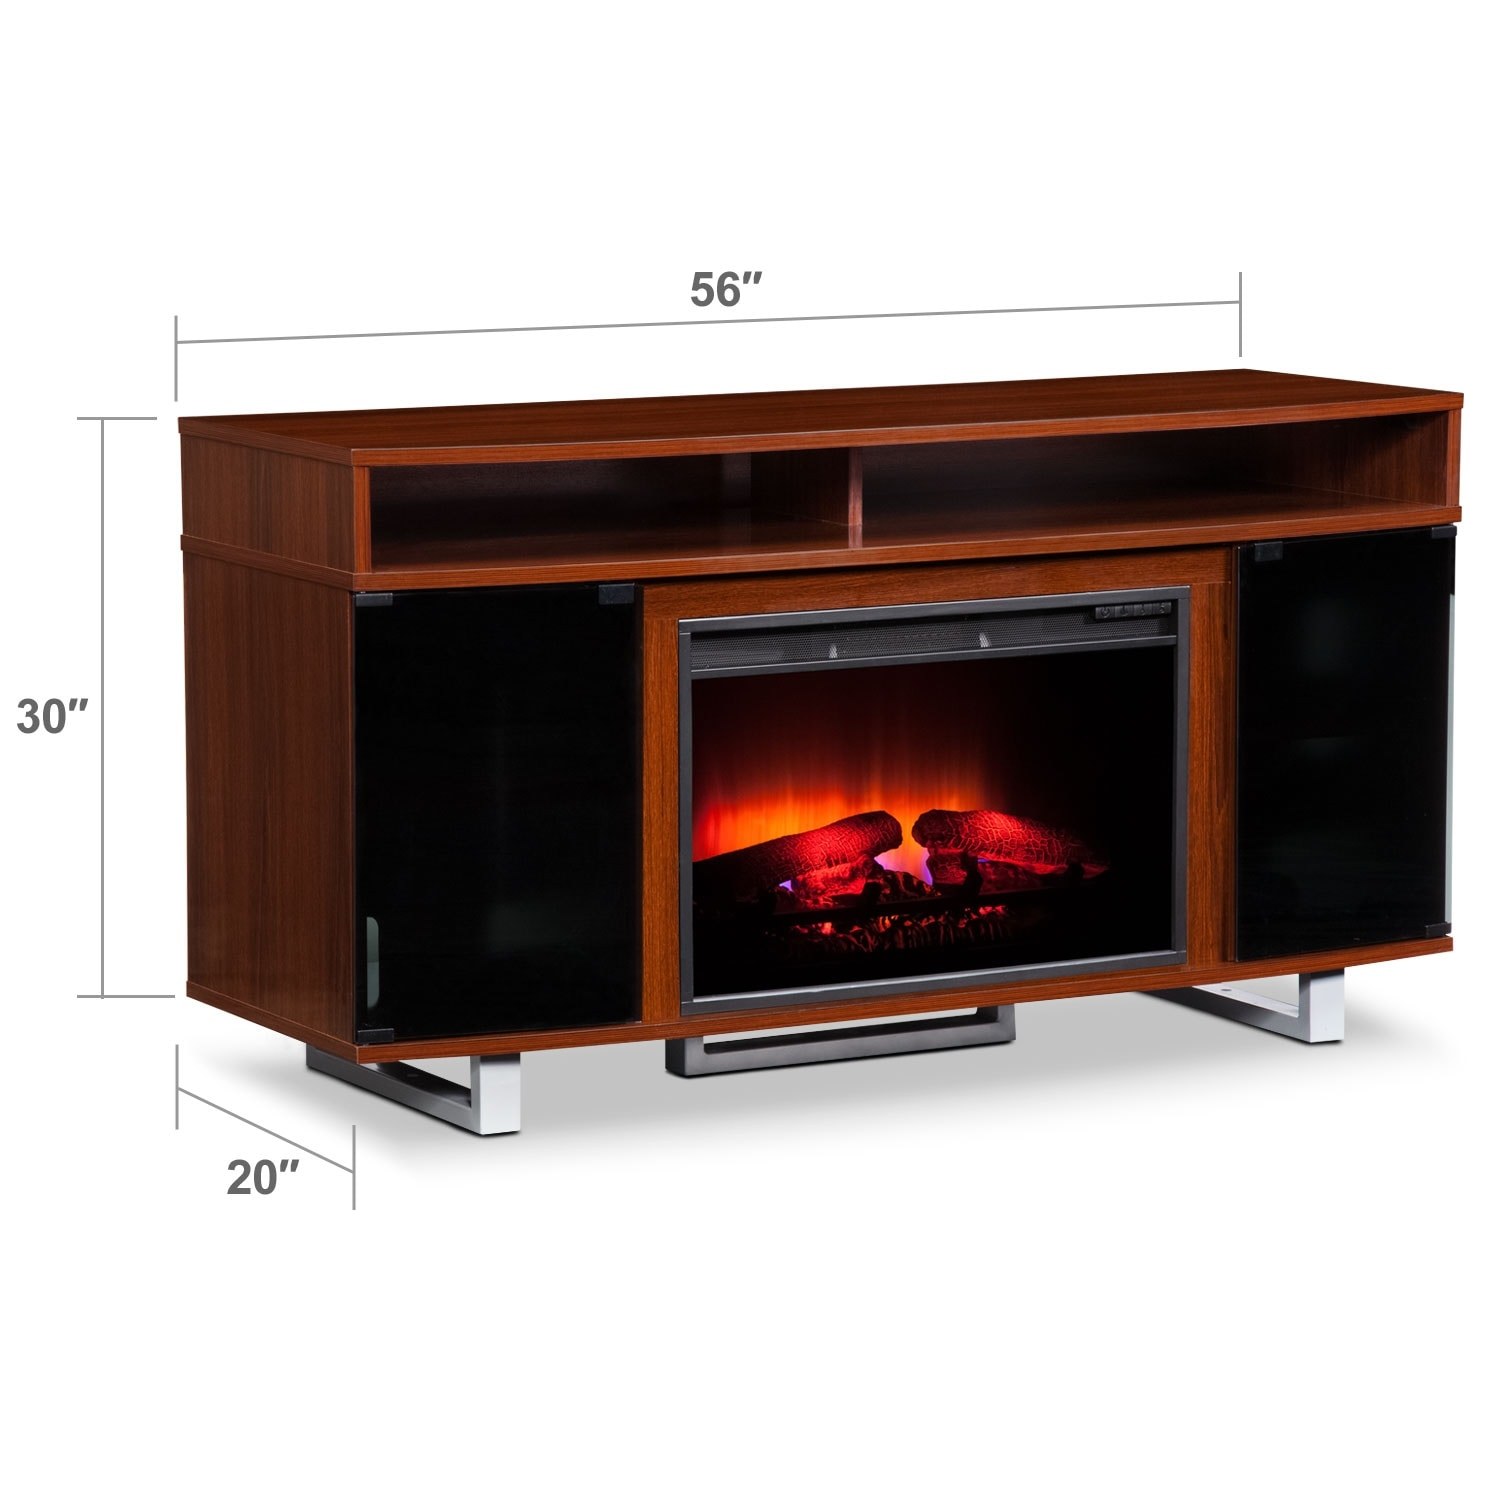 "Entertainment Furniture - Pacer 56"" Traditional Fireplace TV Stand - Cherry"